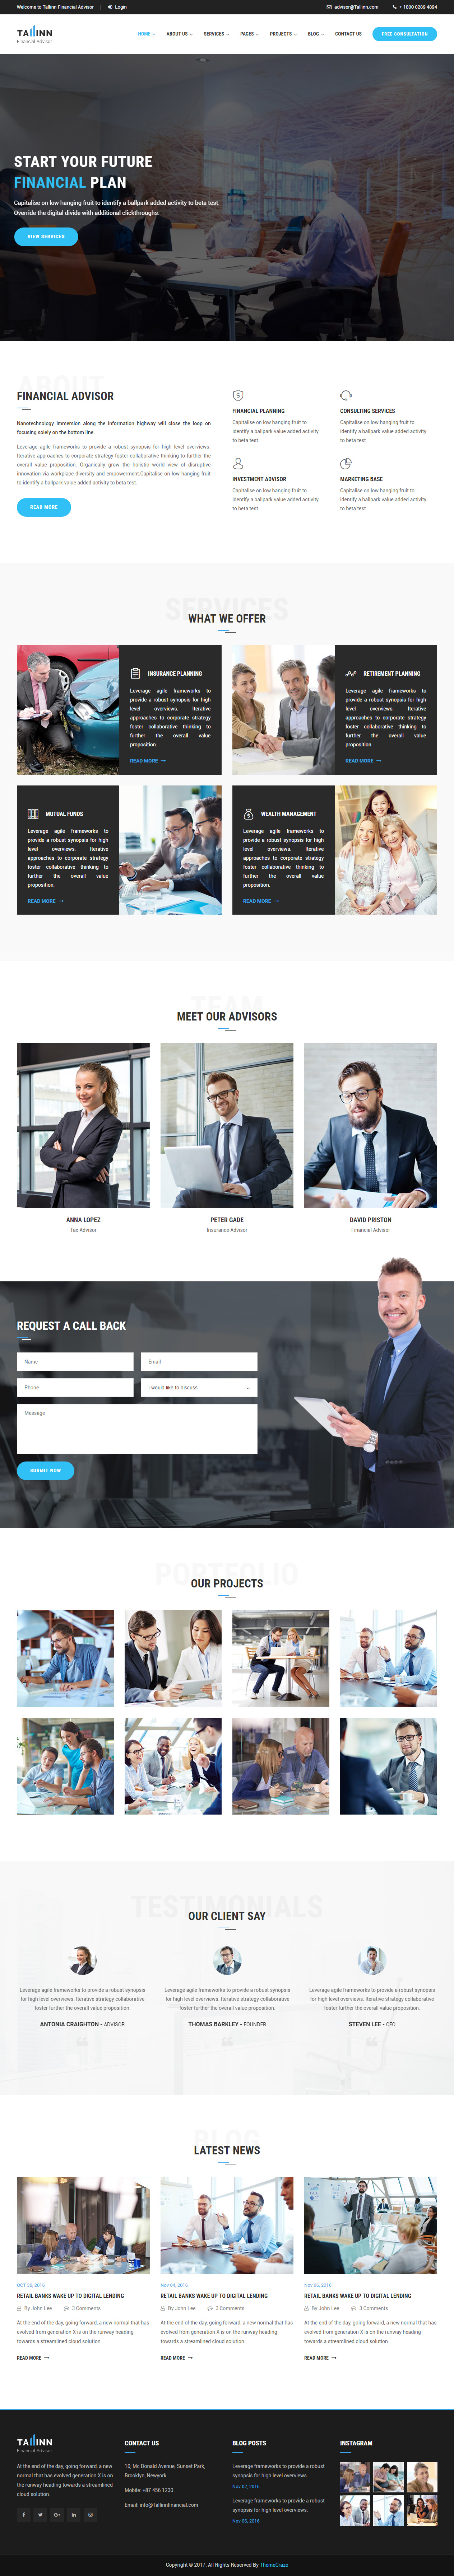 40 Best HTML5 Business Website Templates 2017 - Responsive Miracle